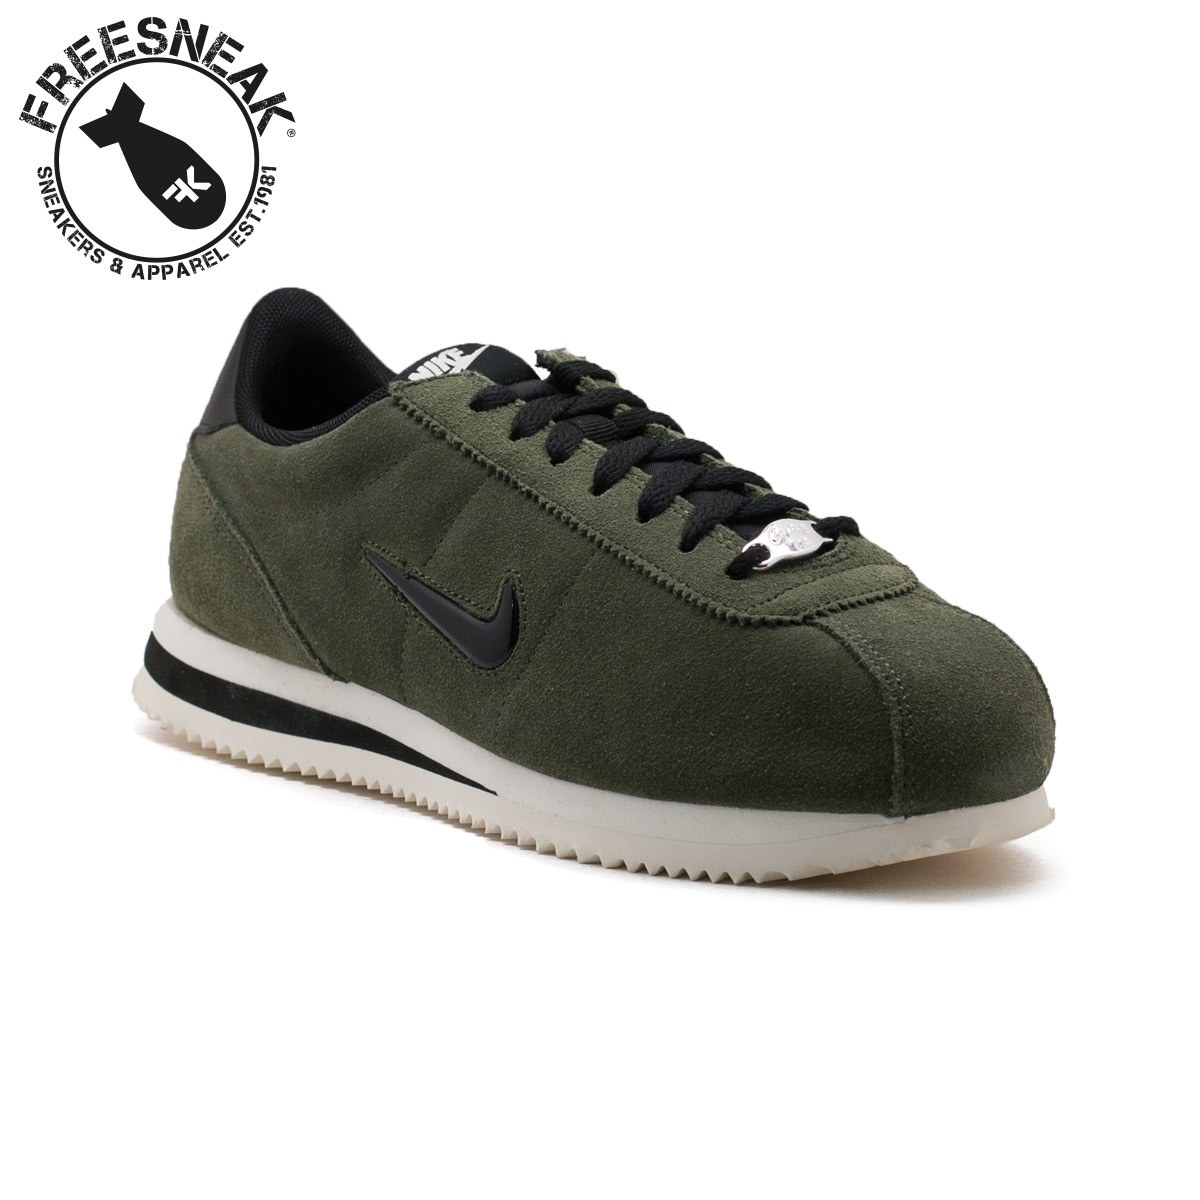 diseño atemporal zapatos genuinos diseño exquisito CORTEZ BASIC JEWEL MILITARY GREEN 833238-300